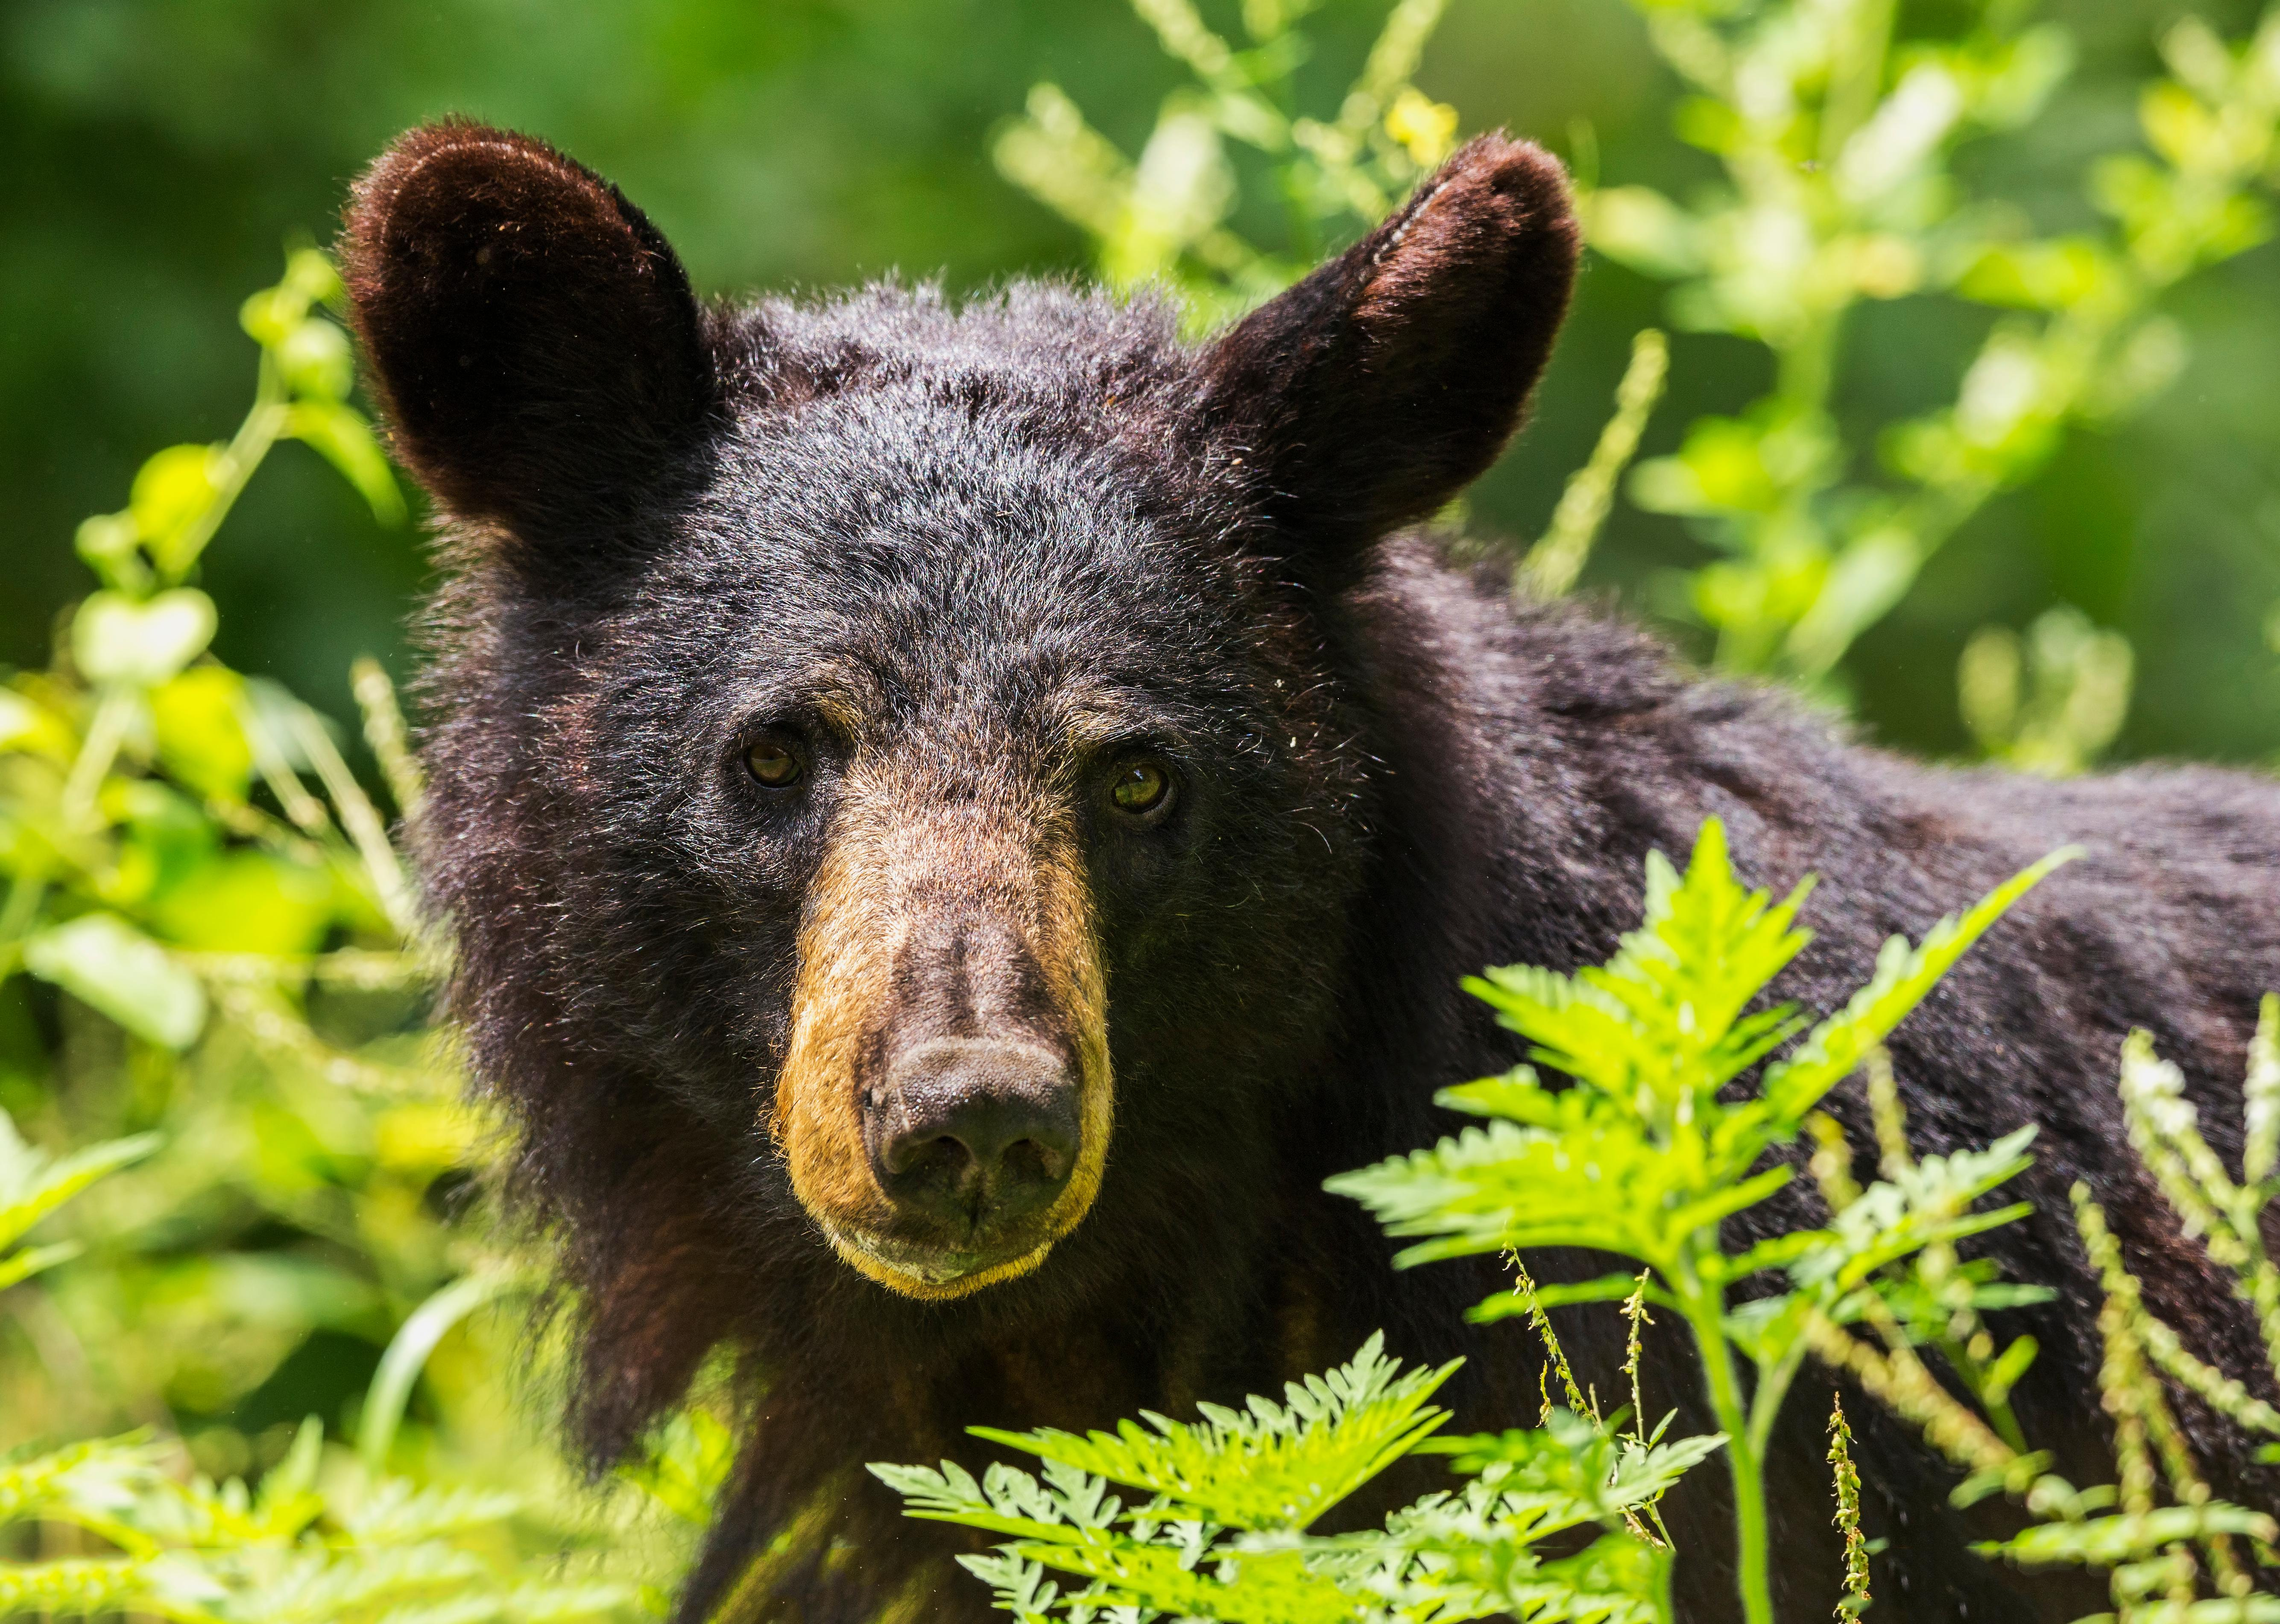 Definitely take a picture if you can, but don't get too close in search of that perfect Instagram shot. Though bears rarely attack, it's better to be safe than a cautionary tale.{ }(File photo)